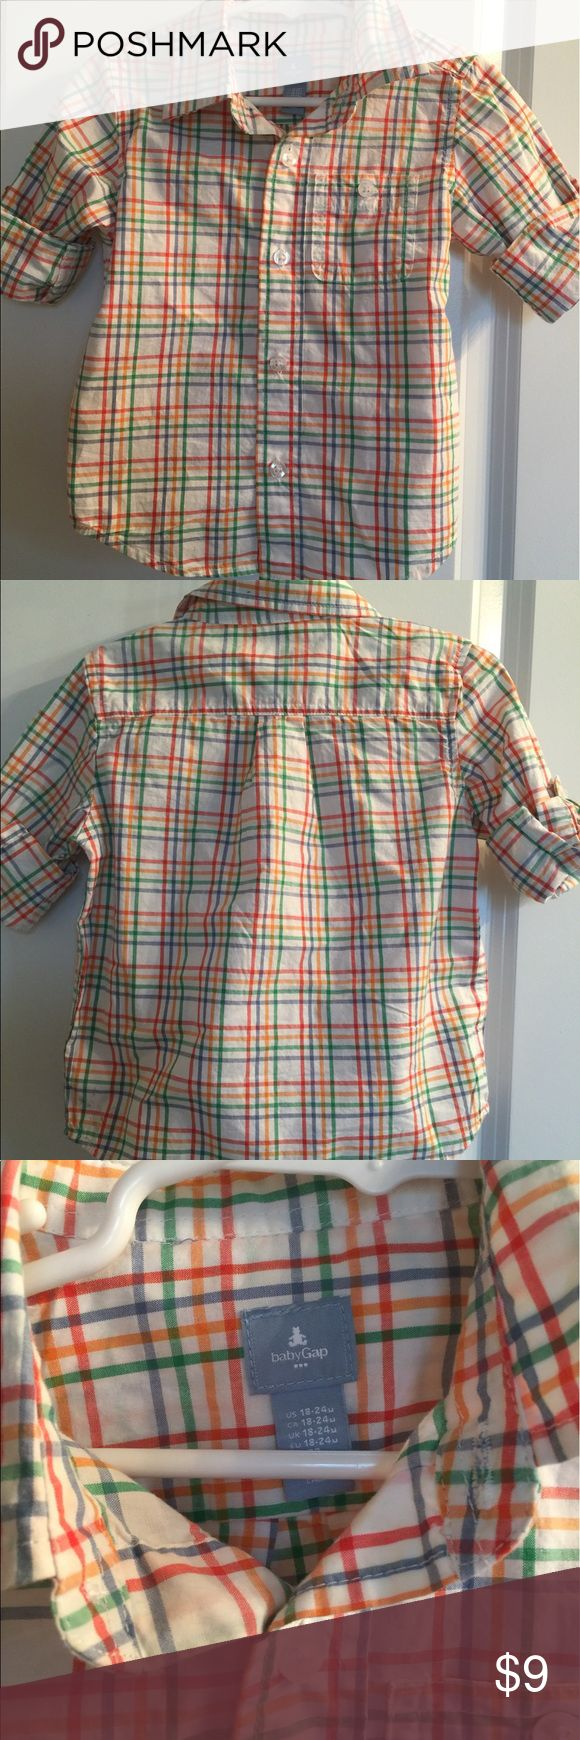 Baby Gap boys button up. 18-24 months. Baby Gap boys button up. Worn once on Easter. Size 18-24 months. White with green, blue, red and yellow stripes. I accept reasonable offers! GAP Shirts & Tops Button Down Shirts